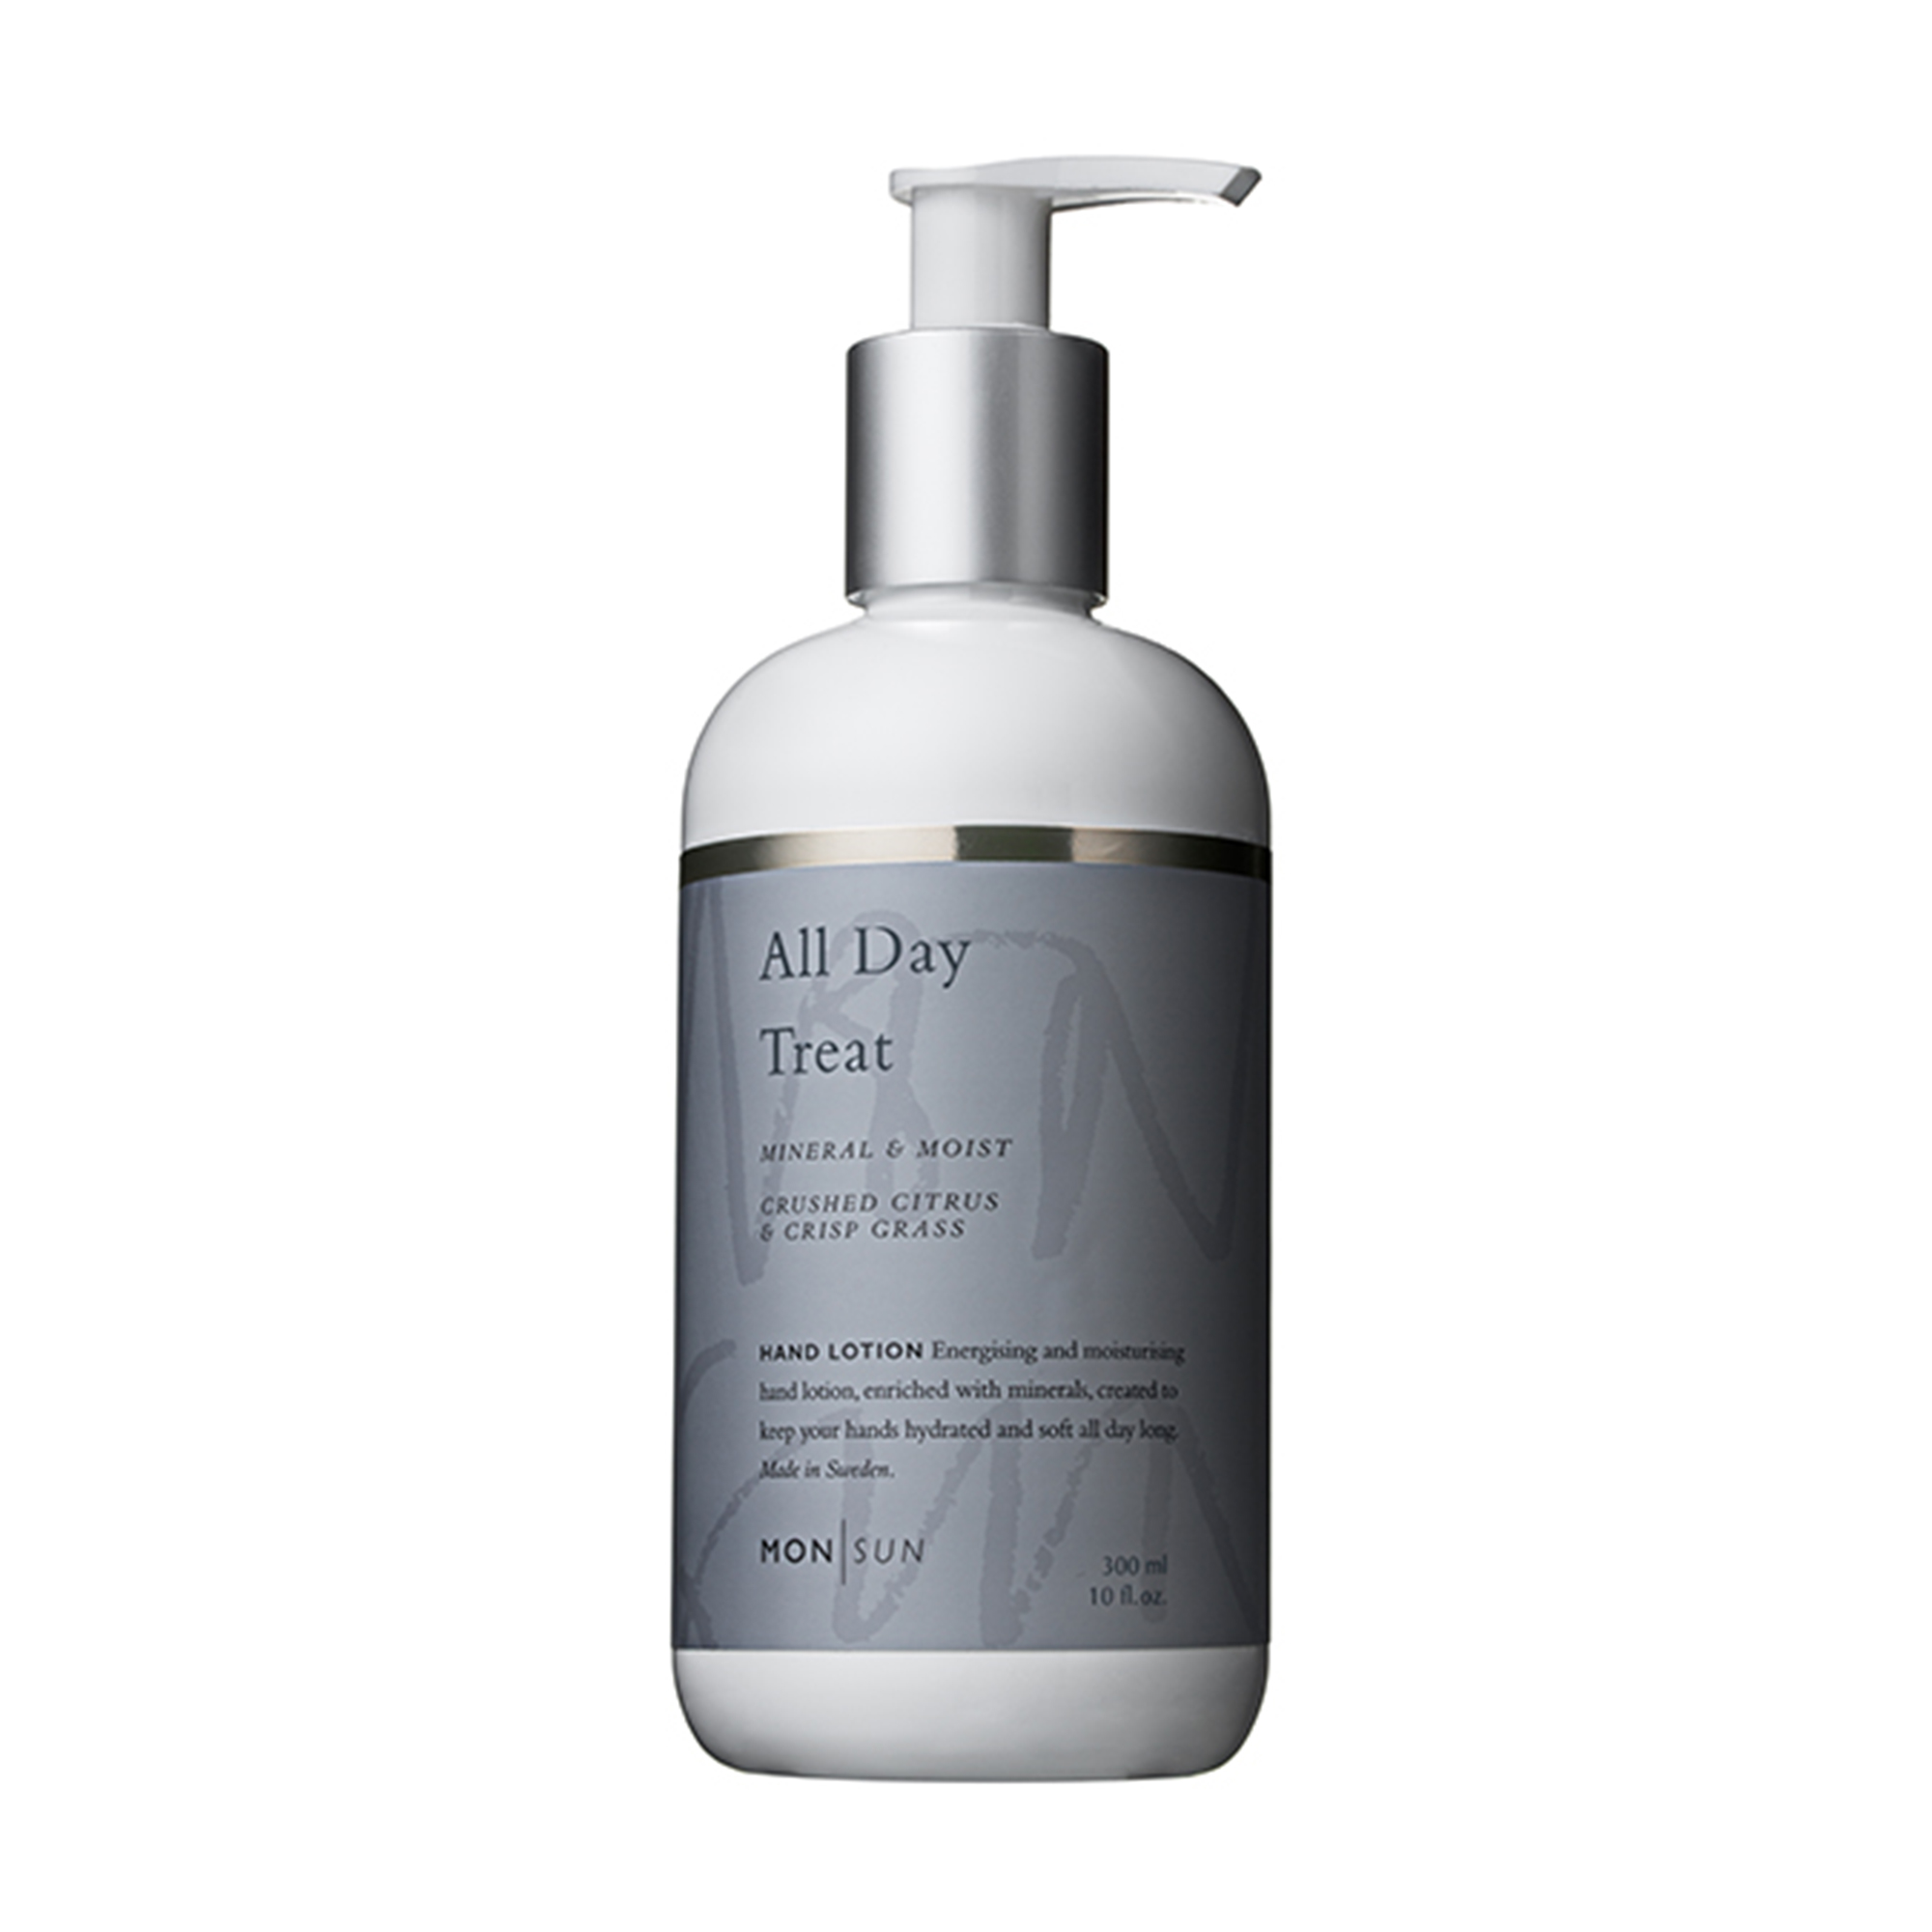 All Day Treat Mineral & Moist Hand Lotion 300 ml